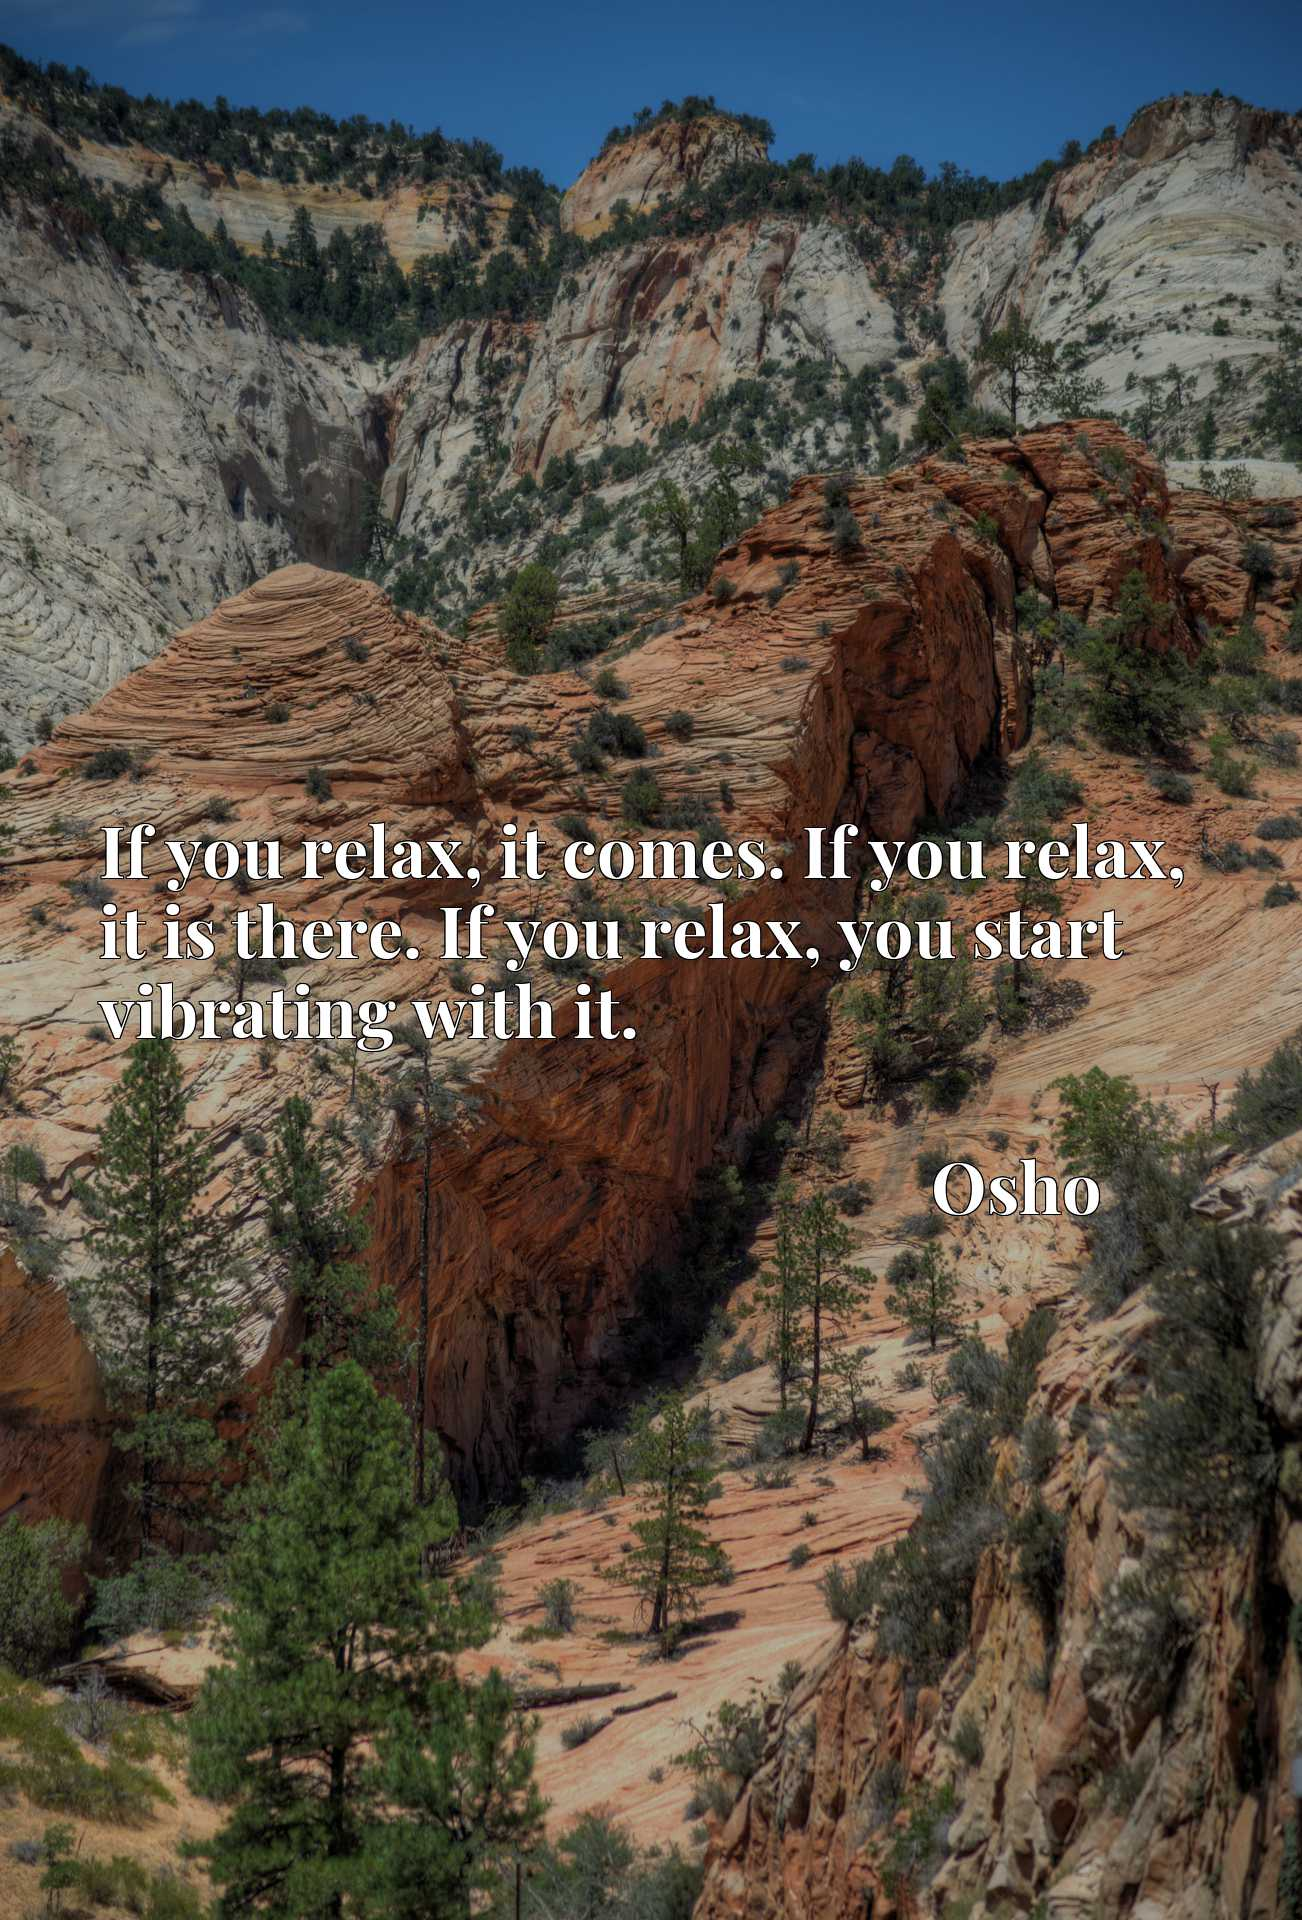 If you relax, it comes. If you relax, it is there. If you relax, you start vibrating with it.